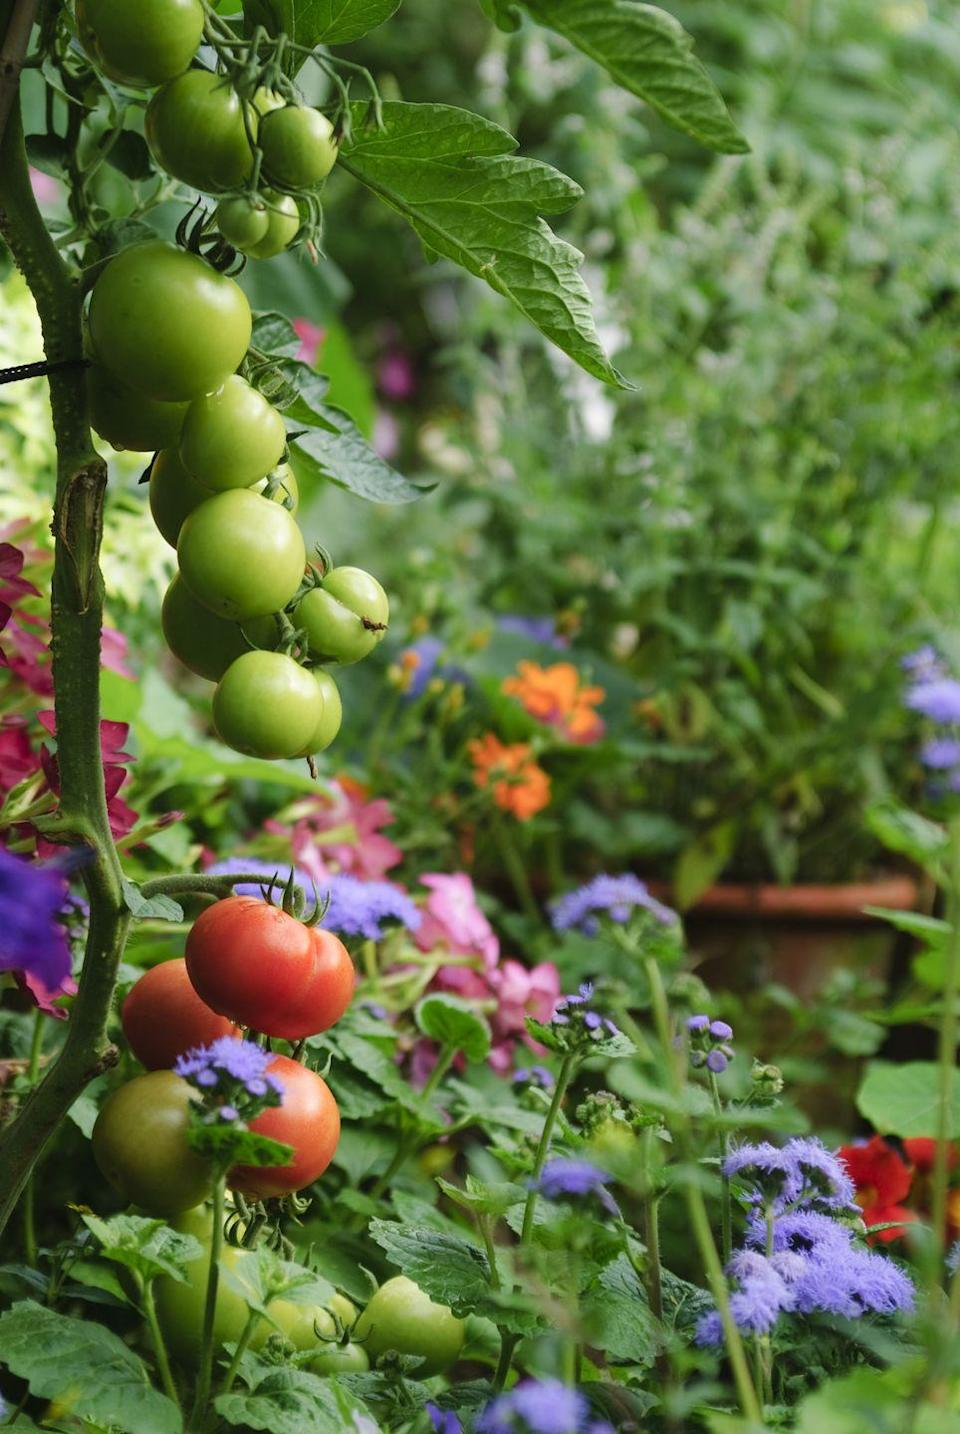 """<p>Placing flowers and veggies together <a href=""""https://www.goodhousekeeping.com/home/gardening/a20706525/plant-flowers-vegetable-garden/"""" rel=""""nofollow noopener"""" target=""""_blank"""" data-ylk=""""slk:in the same beds"""" class=""""link rapid-noclick-resp"""">in the same beds</a> doesn't just save space. It'll help boost your yields and keep plants happy by attracting more pollinators. </p><p><a href=""""https://www.goodhousekeeping.com/home/gardening/a20706481/companion-garden-planting/"""" rel=""""nofollow noopener"""" target=""""_blank"""" data-ylk=""""slk:RELATED: 26 Plants You Should Always Grow Side-By-Side"""" class=""""link rapid-noclick-resp""""><strong>RELATED:</strong> 26 Plants You Should Always Grow Side-By-Side</a></p>"""